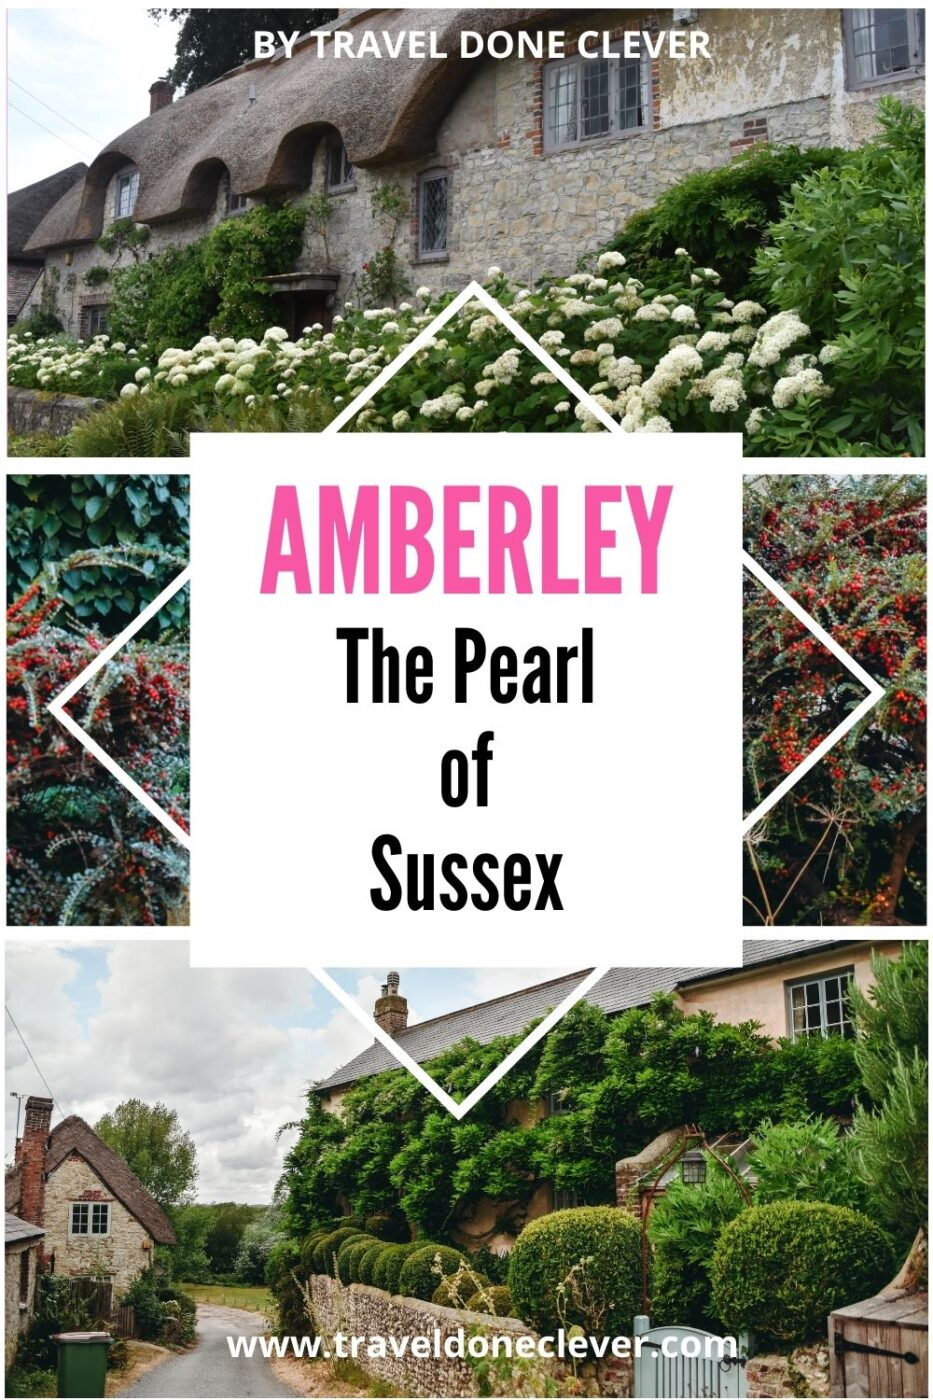 Amberley village West Sussex: Is Amberley the pretties village in Sussex? Well, we believe so. Explore the Pearl of Sussex on your day trip when in West Sussex.